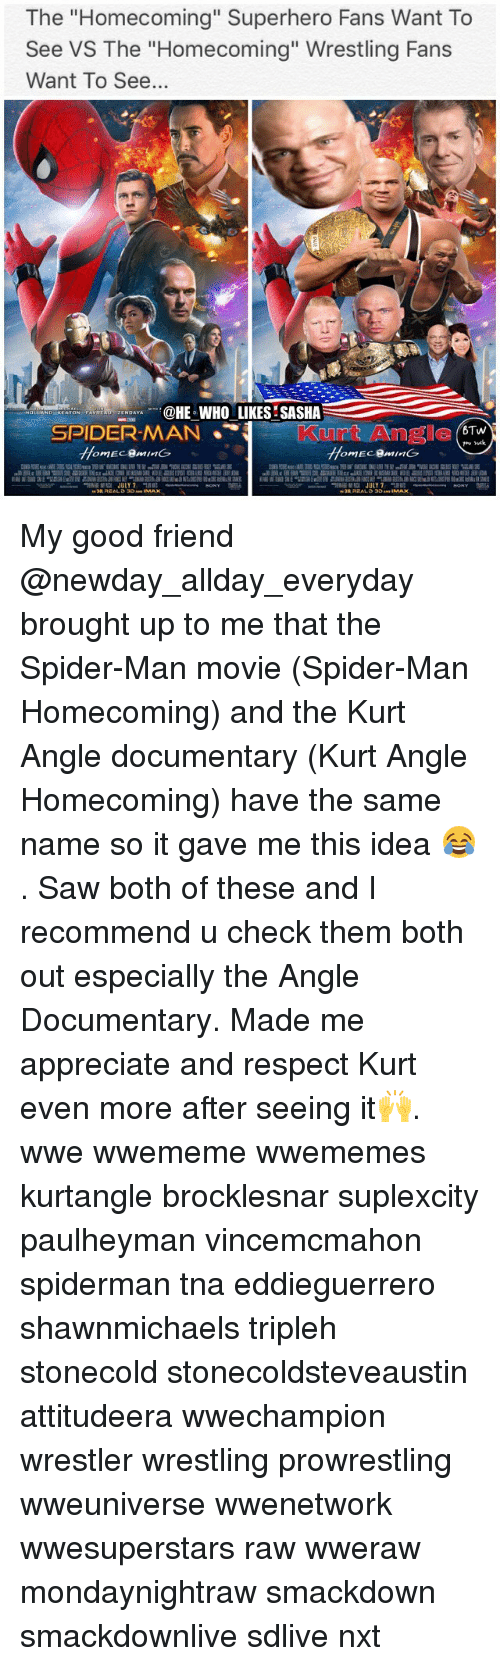 """tna: he """"Homecoming"""" Superhero Fans Want To  See VS The """"Homecoming"""" Wrestling Fans  Want To See..  HE WHO LIKES SASHA  M JULY7 My good friend @newday_allday_everyday brought up to me that the Spider-Man movie (Spider-Man Homecoming) and the Kurt Angle documentary (Kurt Angle Homecoming) have the same name so it gave me this idea 😂. Saw both of these and I recommend u check them both out especially the Angle Documentary. Made me appreciate and respect Kurt even more after seeing it🙌. wwe wwememe wwememes kurtangle brocklesnar suplexcity paulheyman vincemcmahon spiderman tna eddieguerrero shawnmichaels tripleh stonecold stonecoldsteveaustin attitudeera wwechampion wrestler wrestling prowrestling wweuniverse wwenetwork wwesuperstars raw wweraw mondaynightraw smackdown smackdownlive sdlive nxt"""